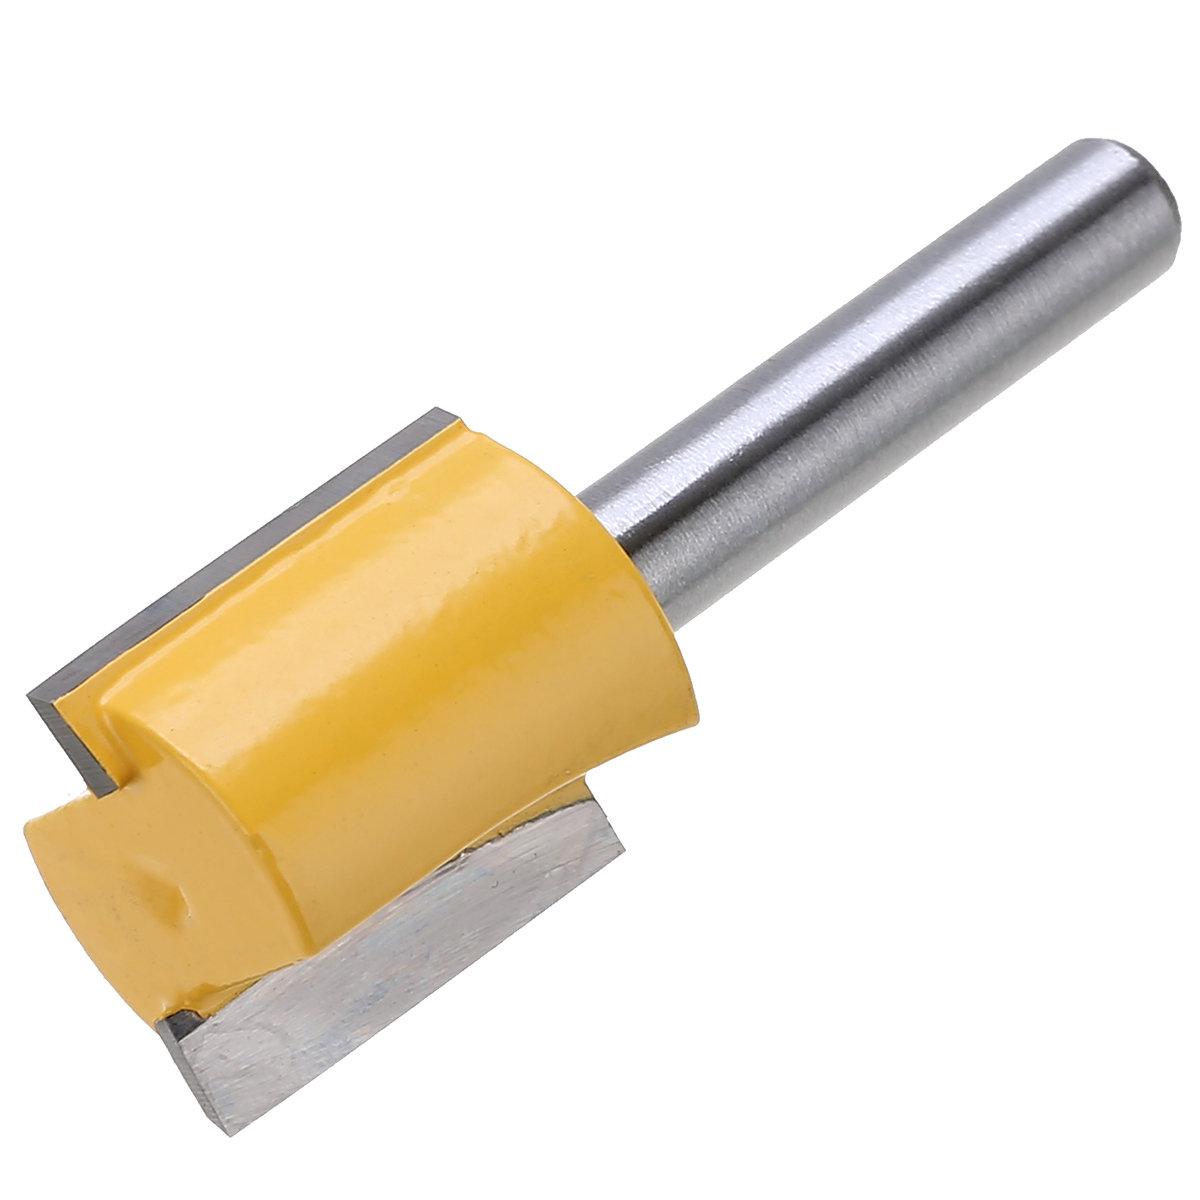 "5pcs/Set Hard Alloy Straight Trimmer Router Bits 1/4"" Shank Trimming Milling Cutter for Wood Woodworking Machine Tools"